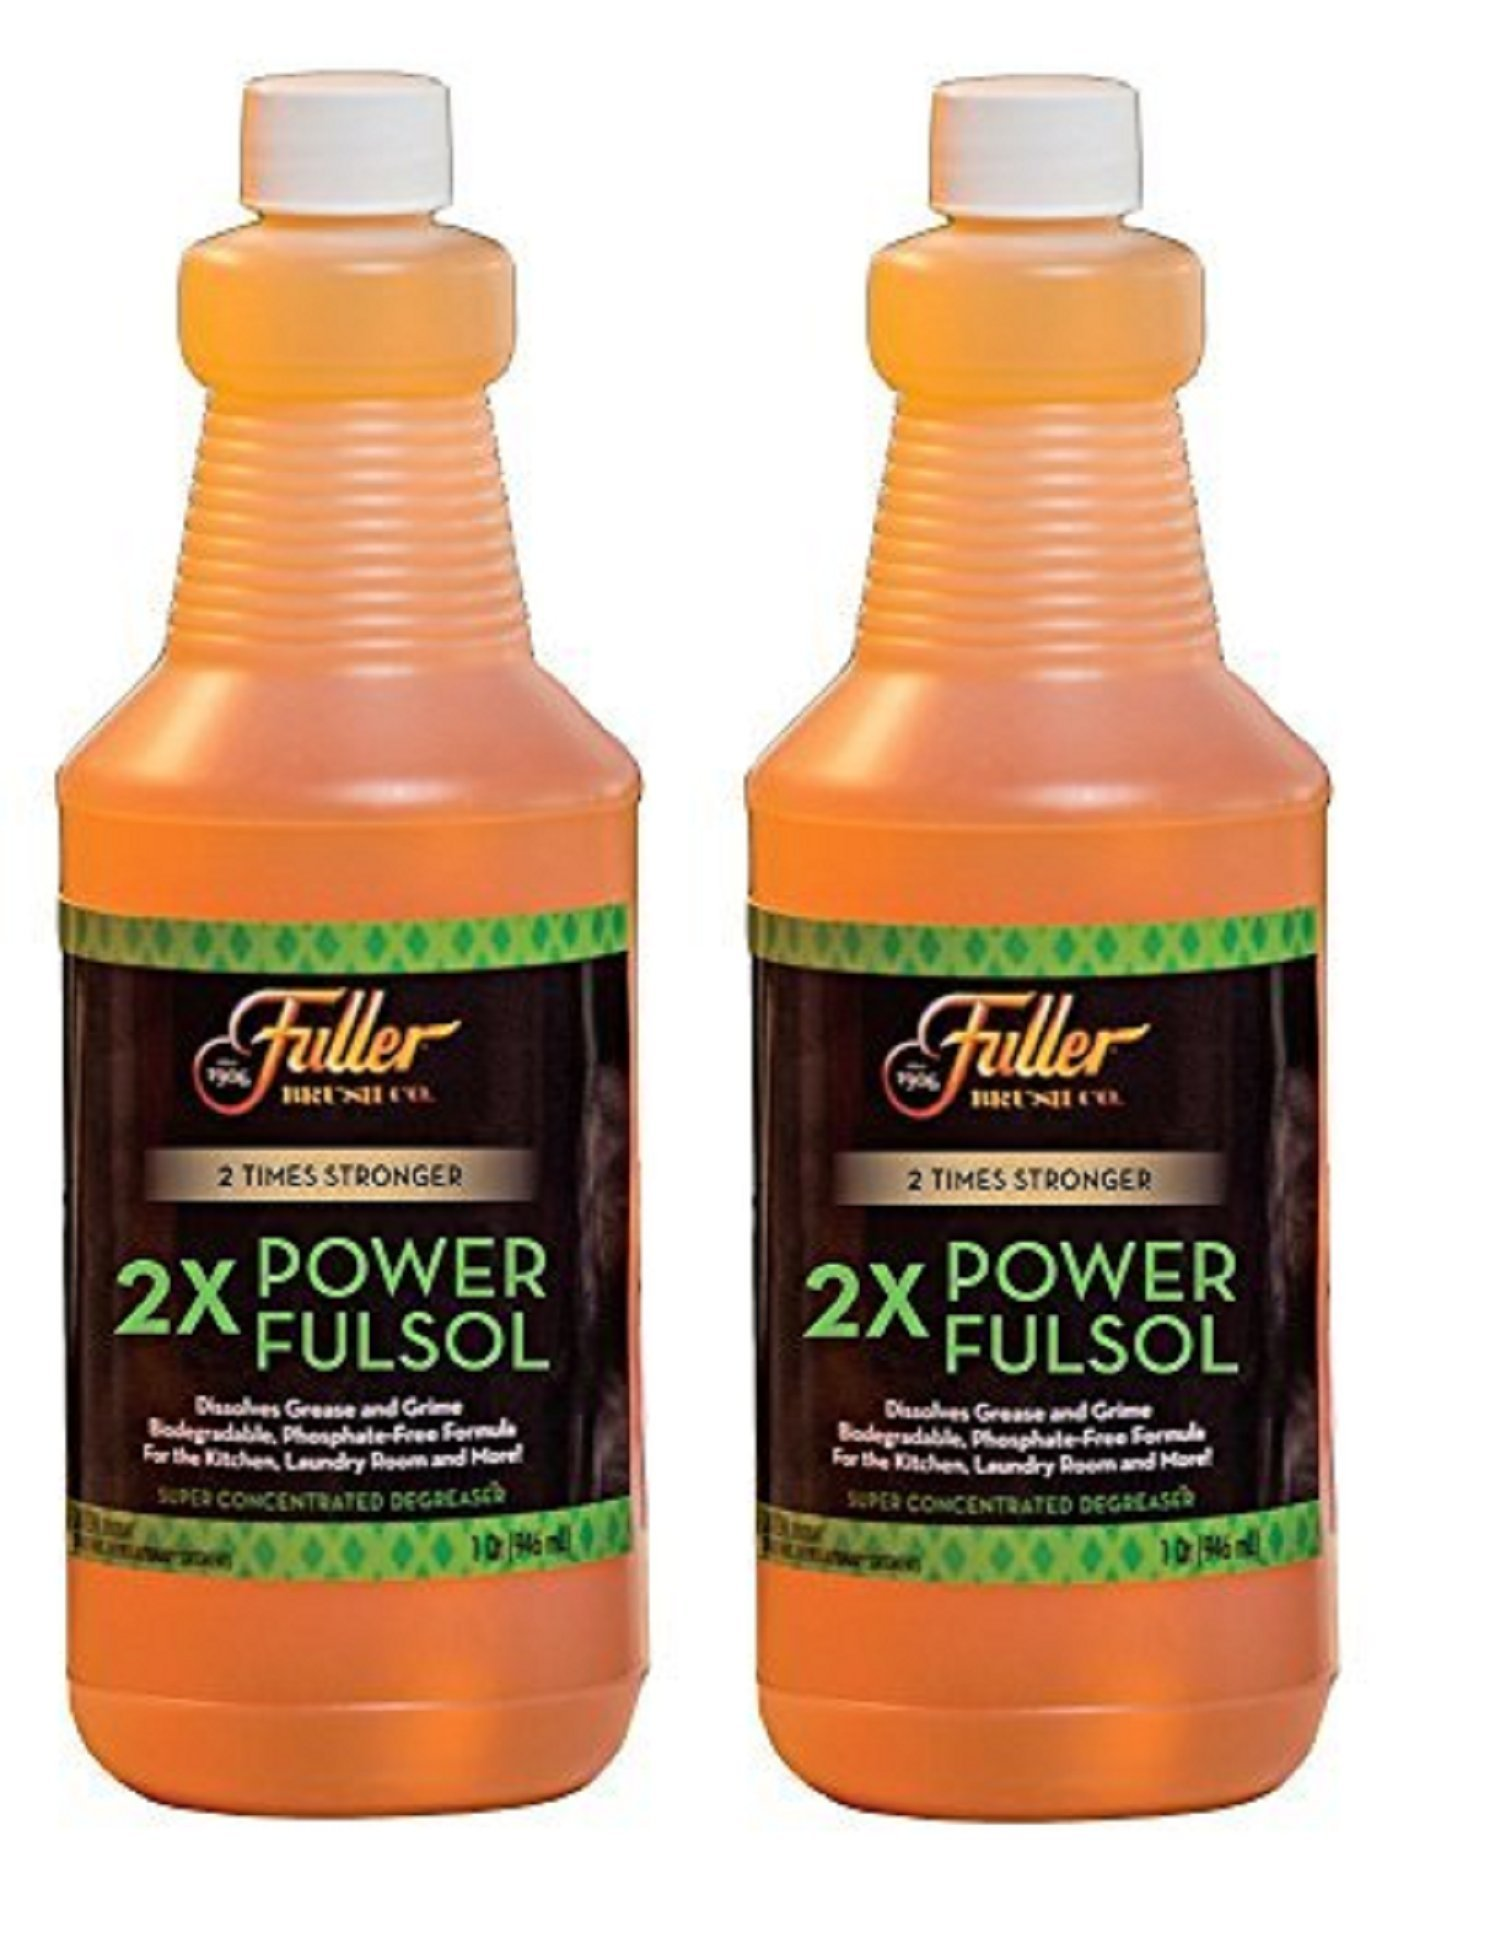 Fuller Brush 2X Power Fulsol - Super Concentrated Degreaser - Dissolves Grease & Grime - Makes 30 Gallons of Cleaning Power - 1 Qt. - 2 Pack